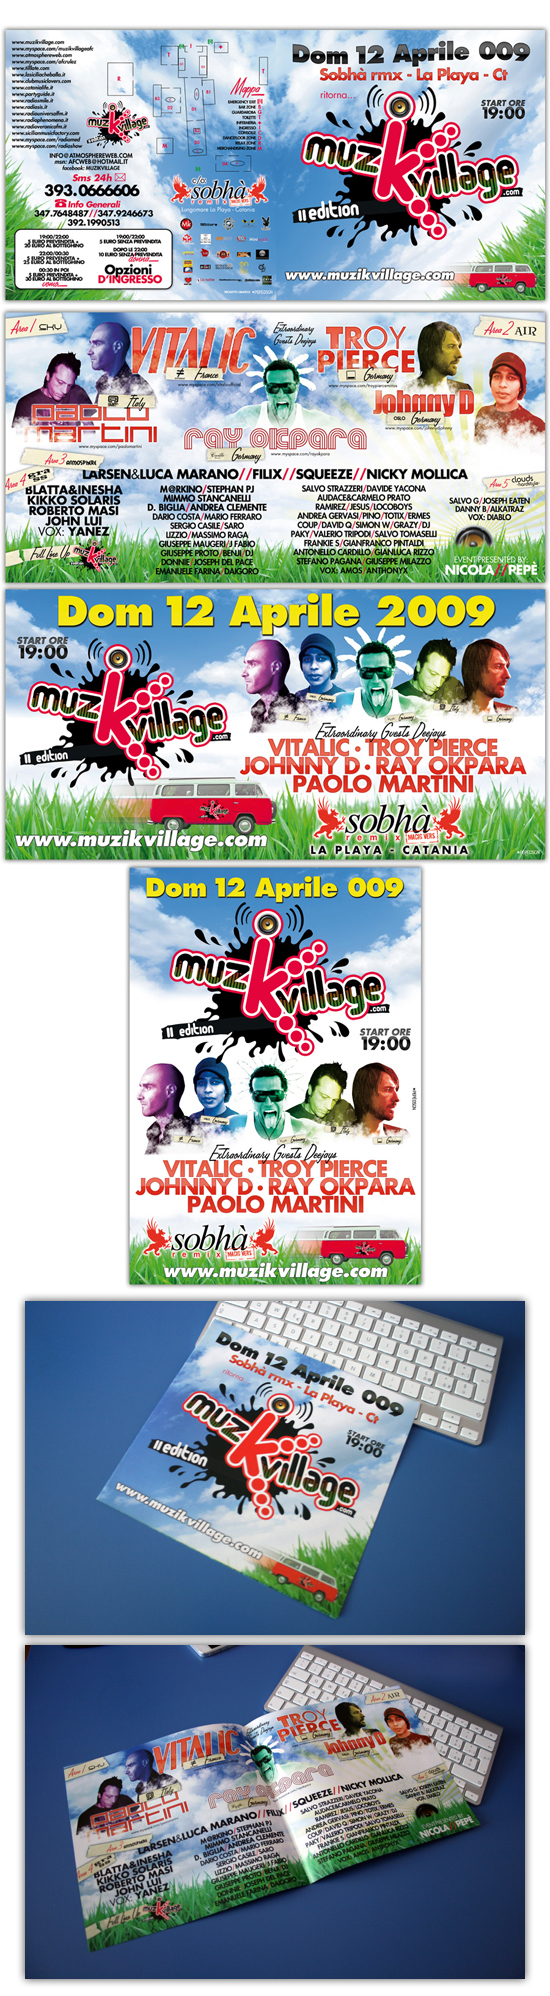 Muzik Village – Catania (IT)